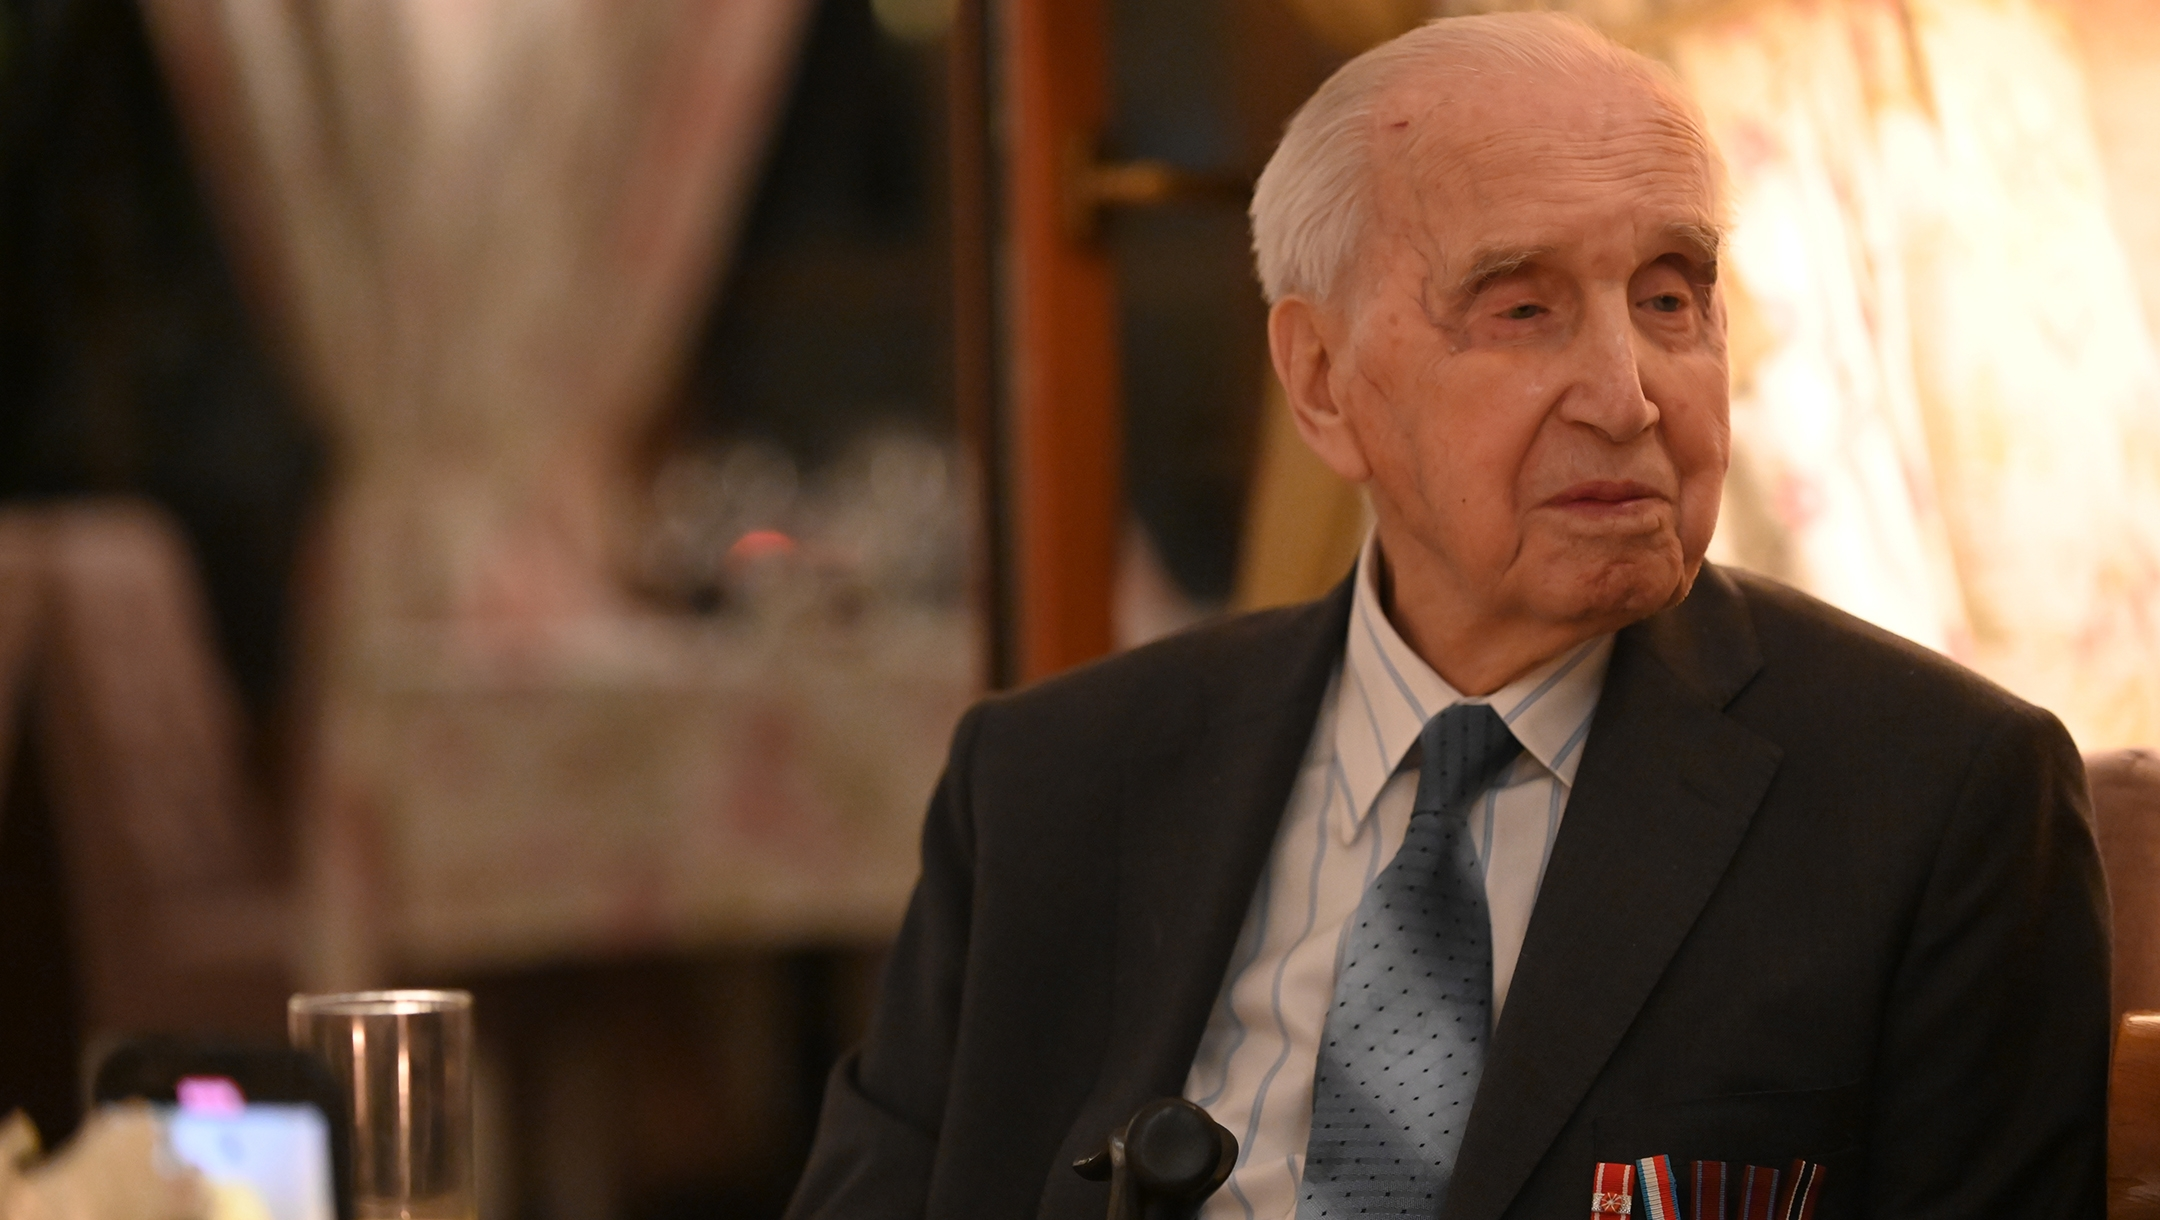 Jozef Walaszczyk, 100, who saved more than 50 Jews during the Holocaust, telling his story at a restaurant in Warsaw, Poland on Jan. 28, 2020. (Cnaan Liphshiz)